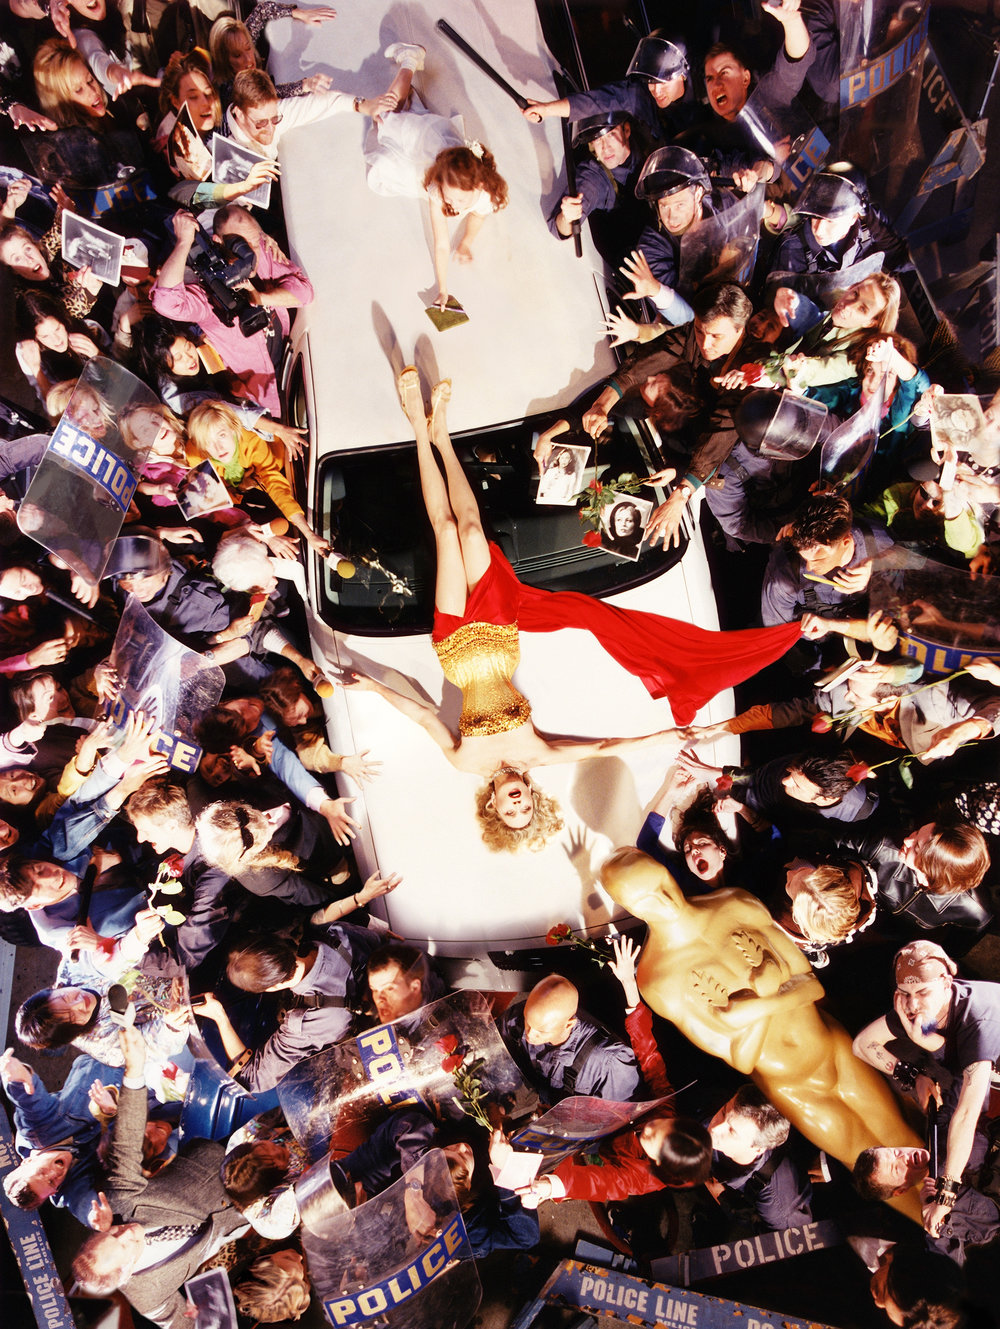 """Faye Dunaway: Day of the Locust, 1996"". David LaChapelle. © David LaChapelle / Courtesy Staley-Wise Gallery, New York"